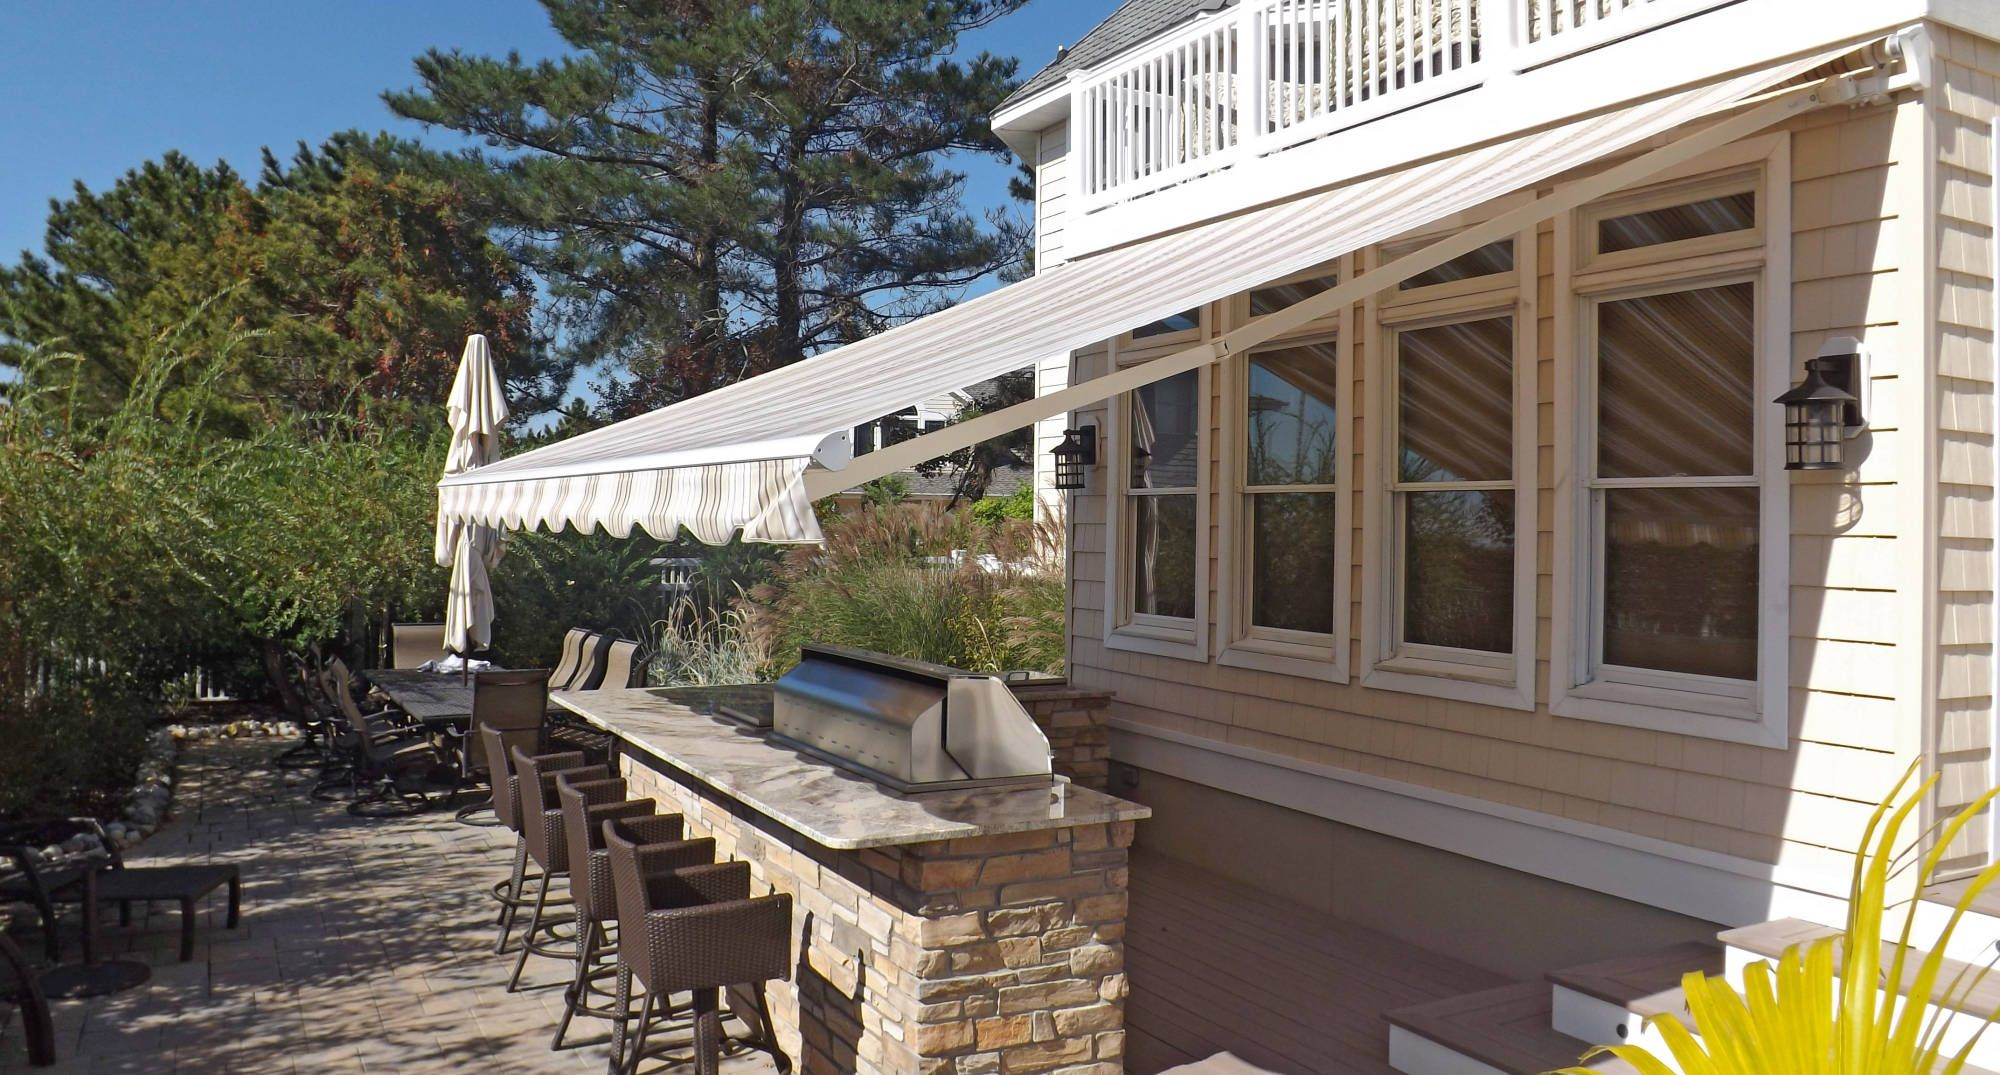 Sunesta Motorized Retractable Awning From Innovative Openings In